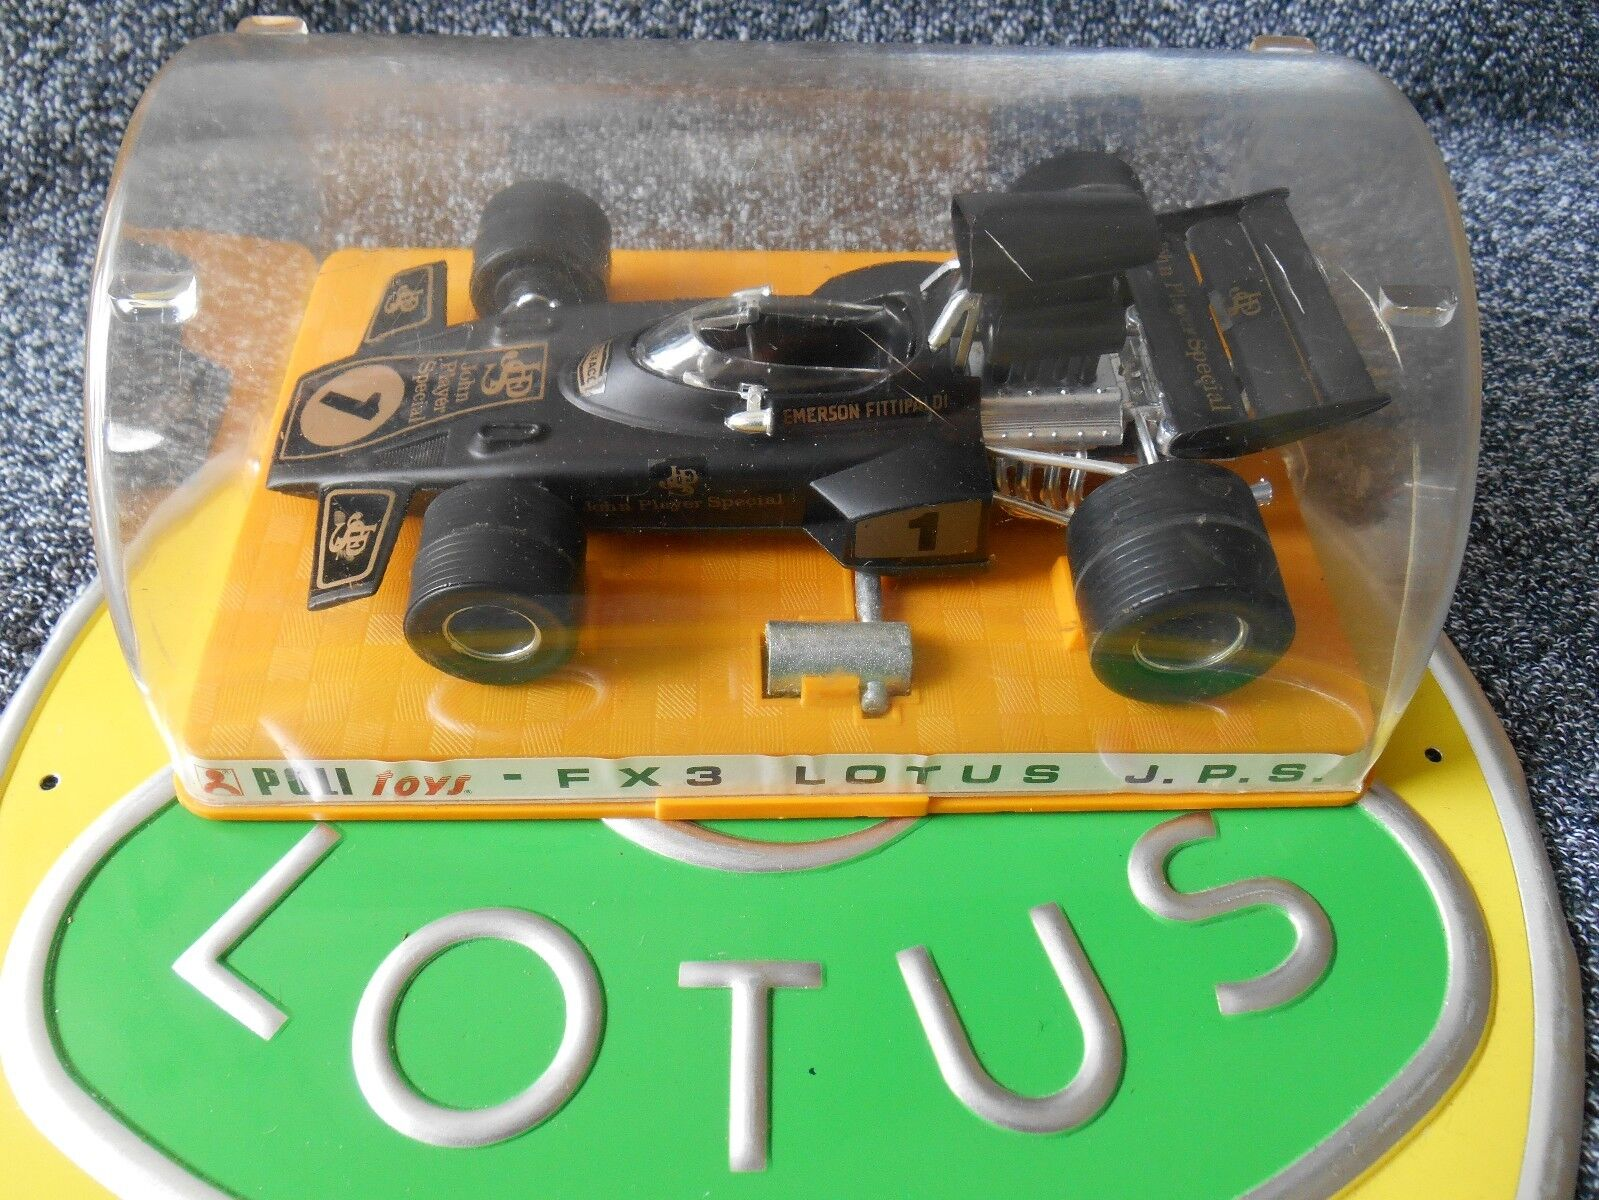 POLISTIL Lotus JPS 72 FX3 F1 1 25 PETERSON FITTIPALDI Walker Boxed